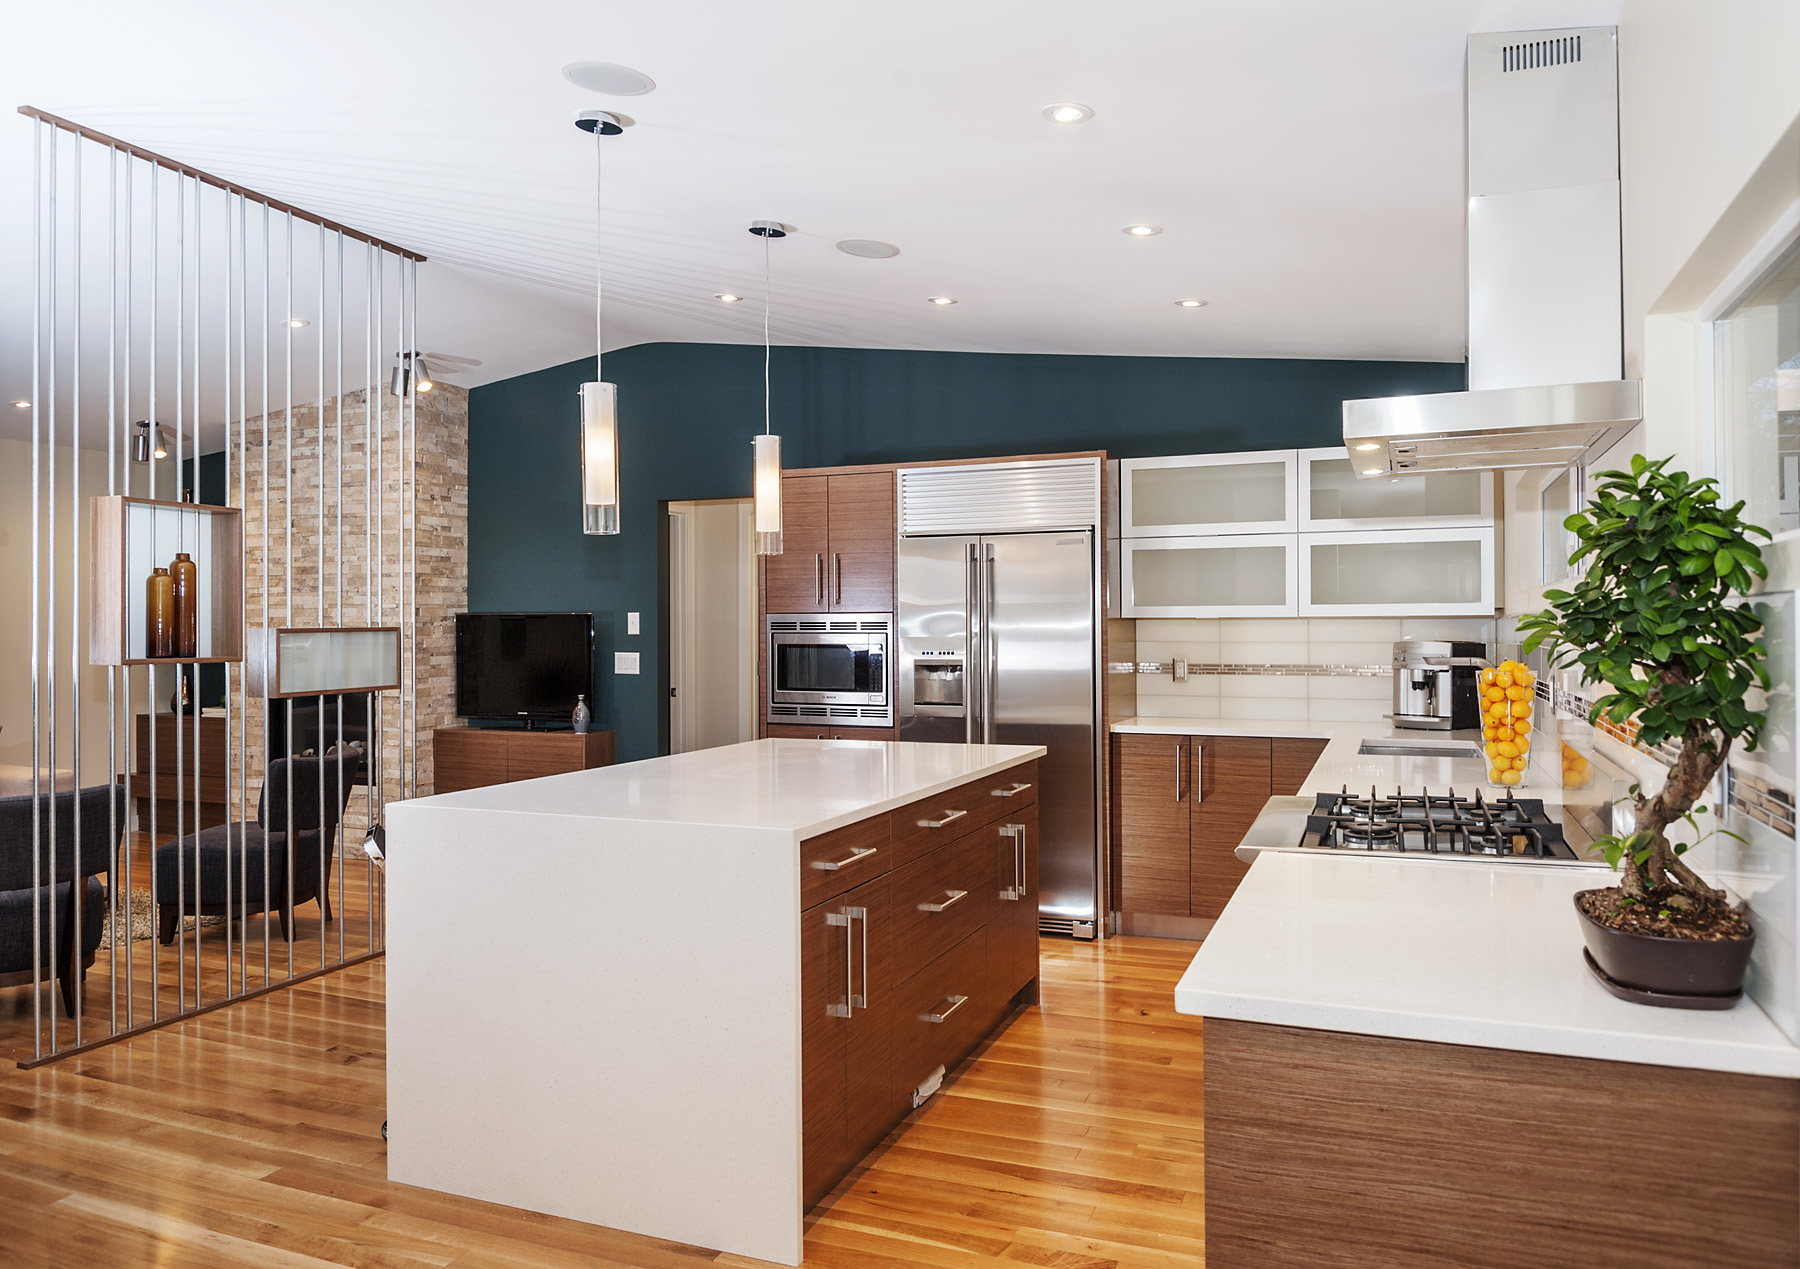 2012 Home Completions & Within Design